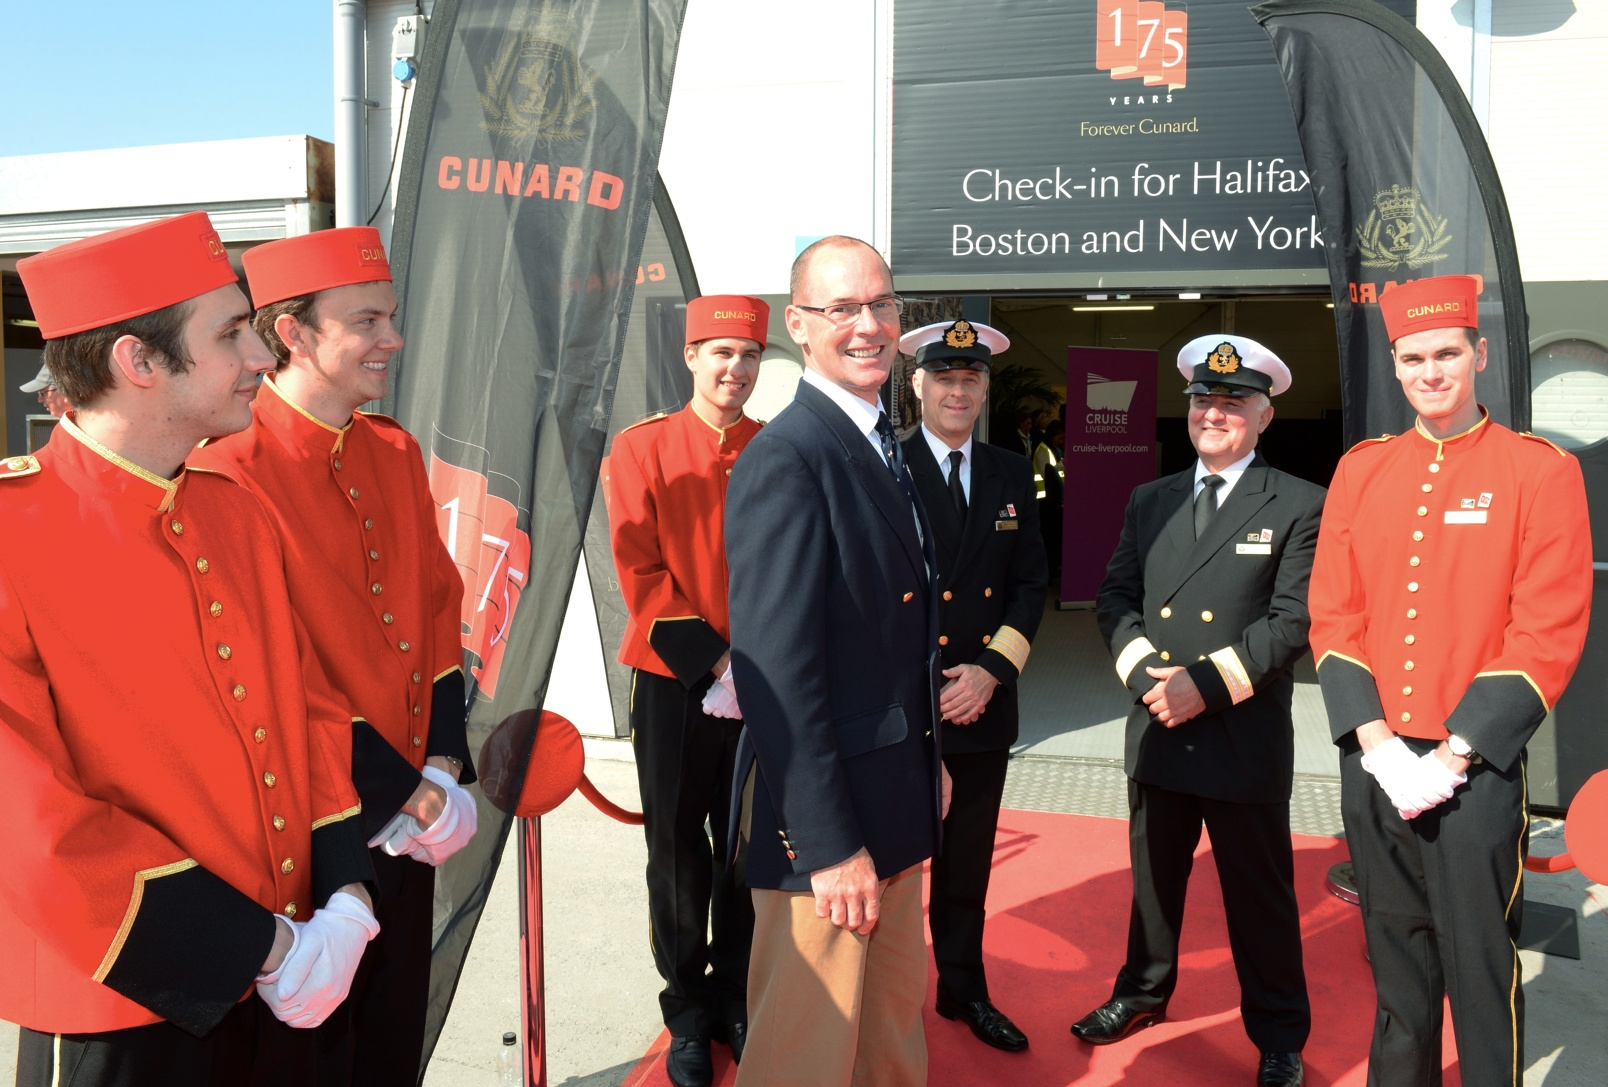 Hugh Paton of Canada, descendant of Sir Samuel Cunard, was welcomed by Cunard's officers and bell boys